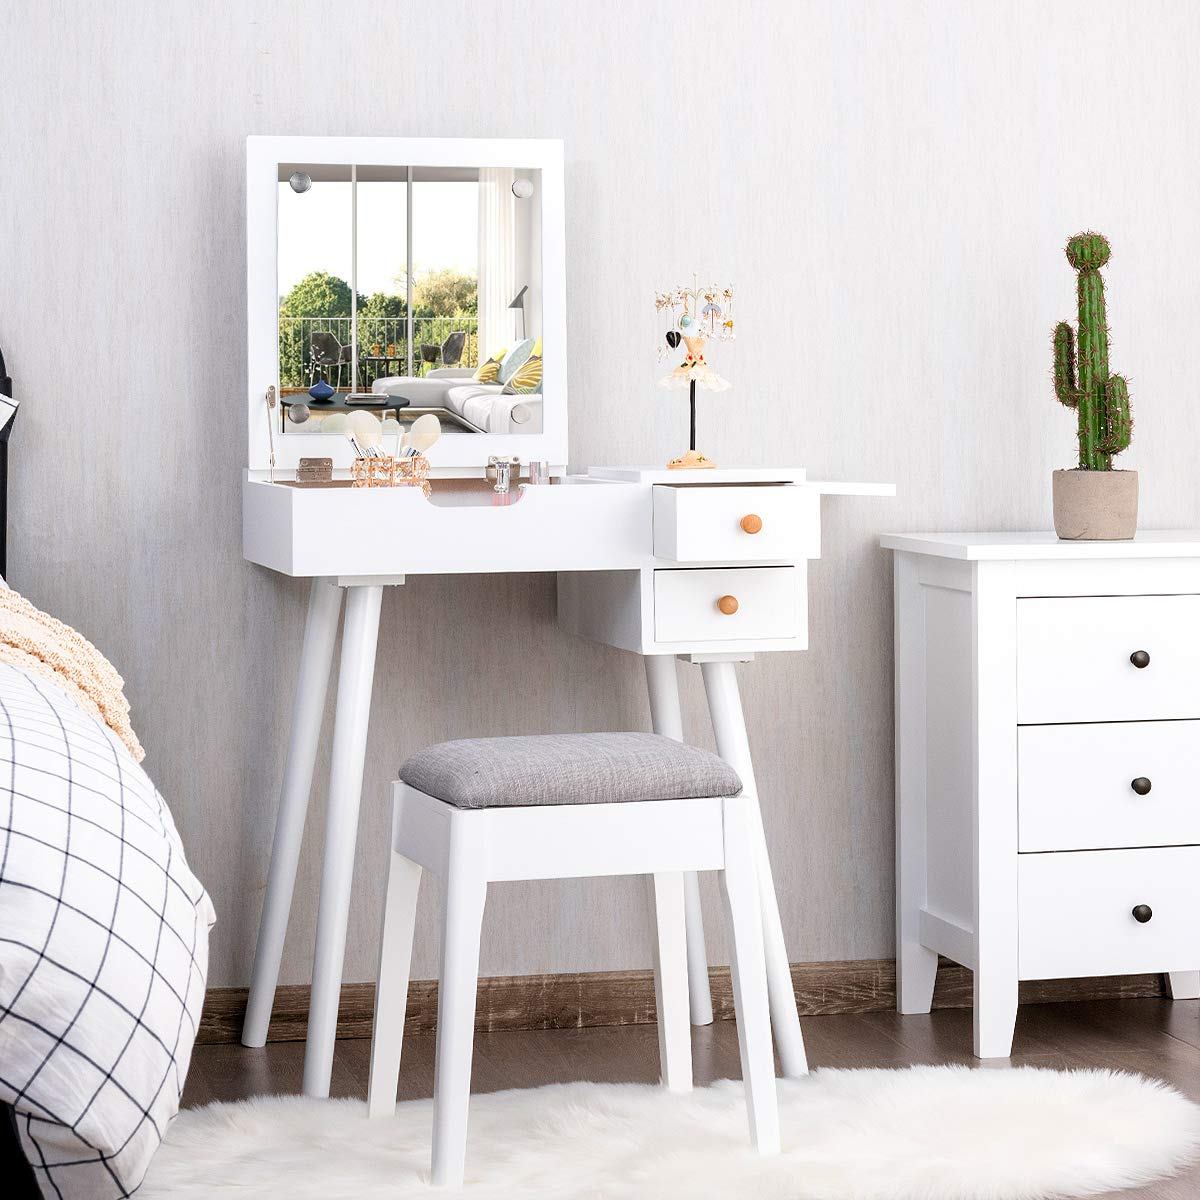 CHARMAID Dresser set for small spaces